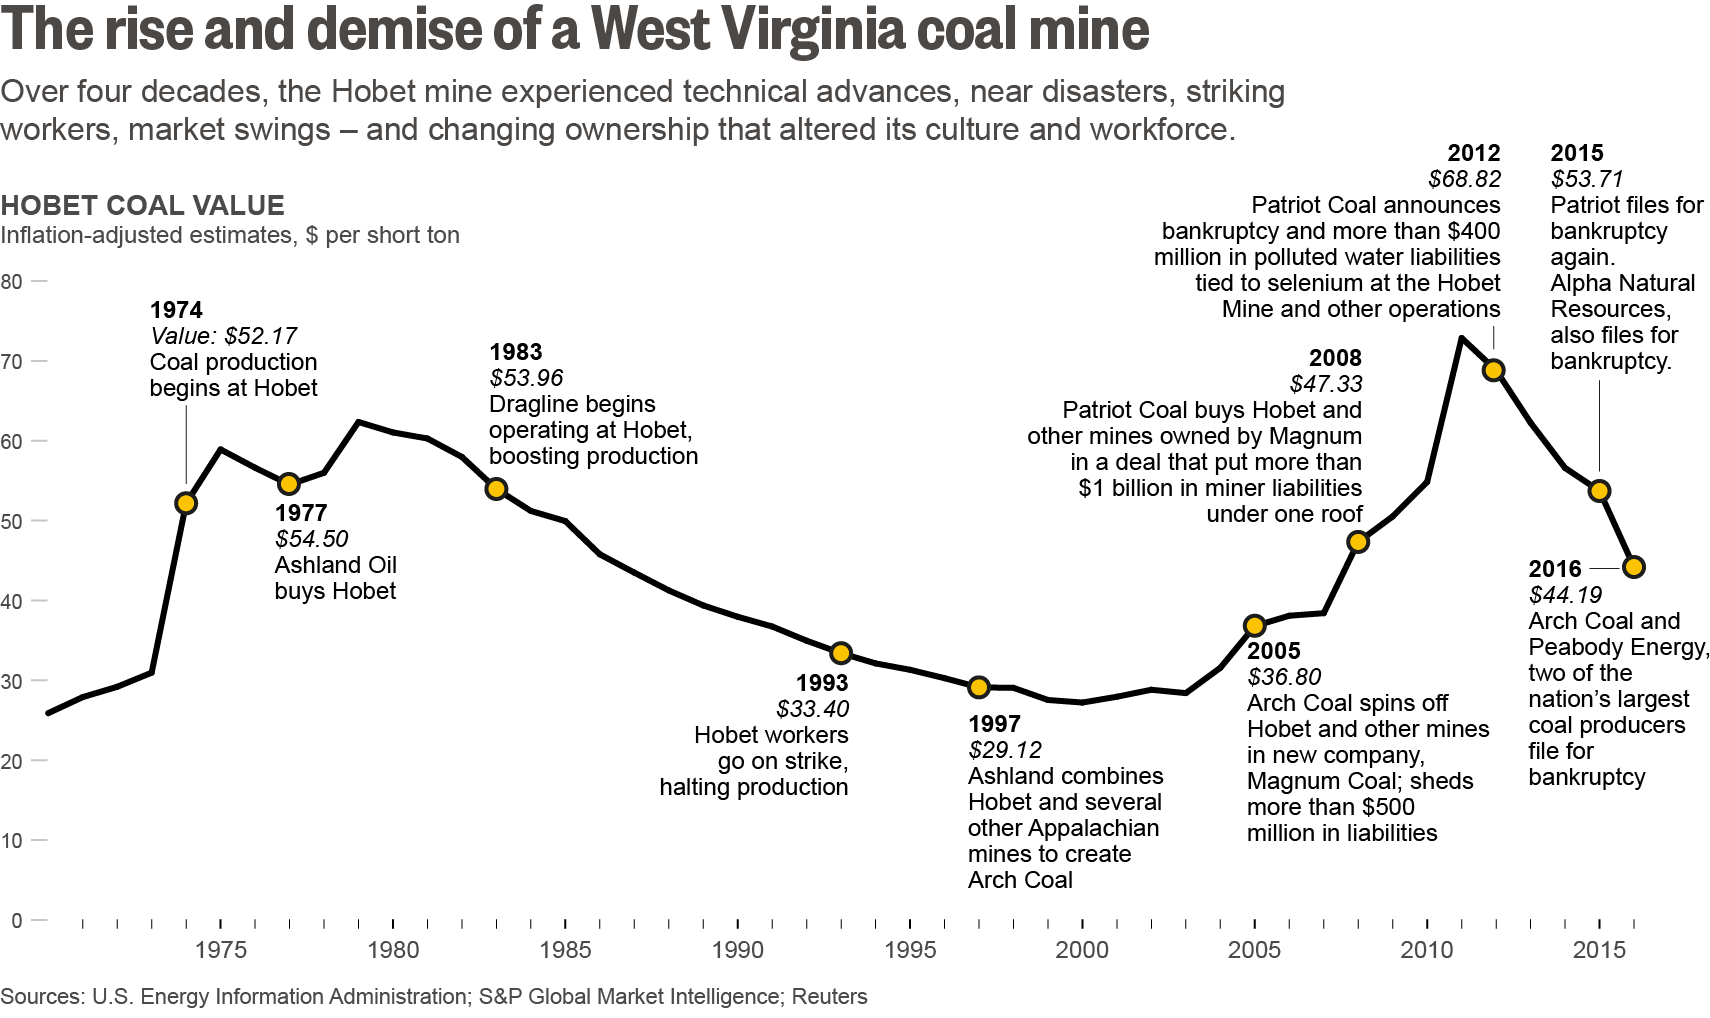 The rise and demise of a West Virginia coal mine